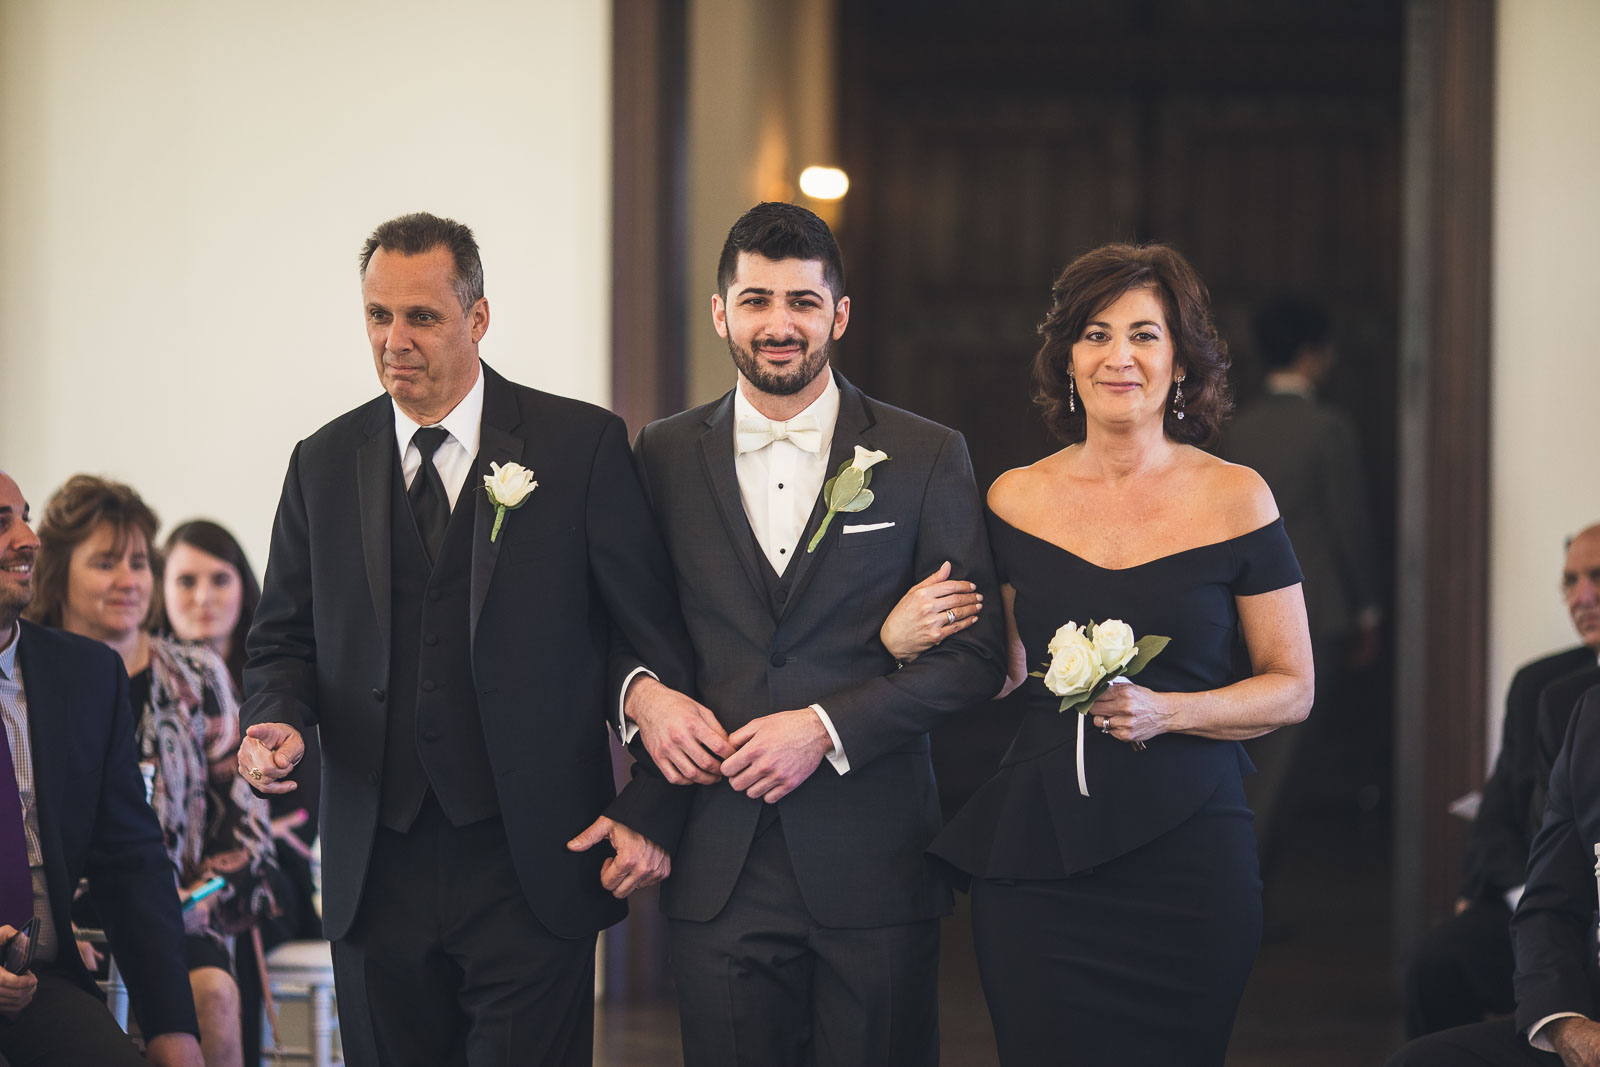 Groom and Parents Wedding Ceremony